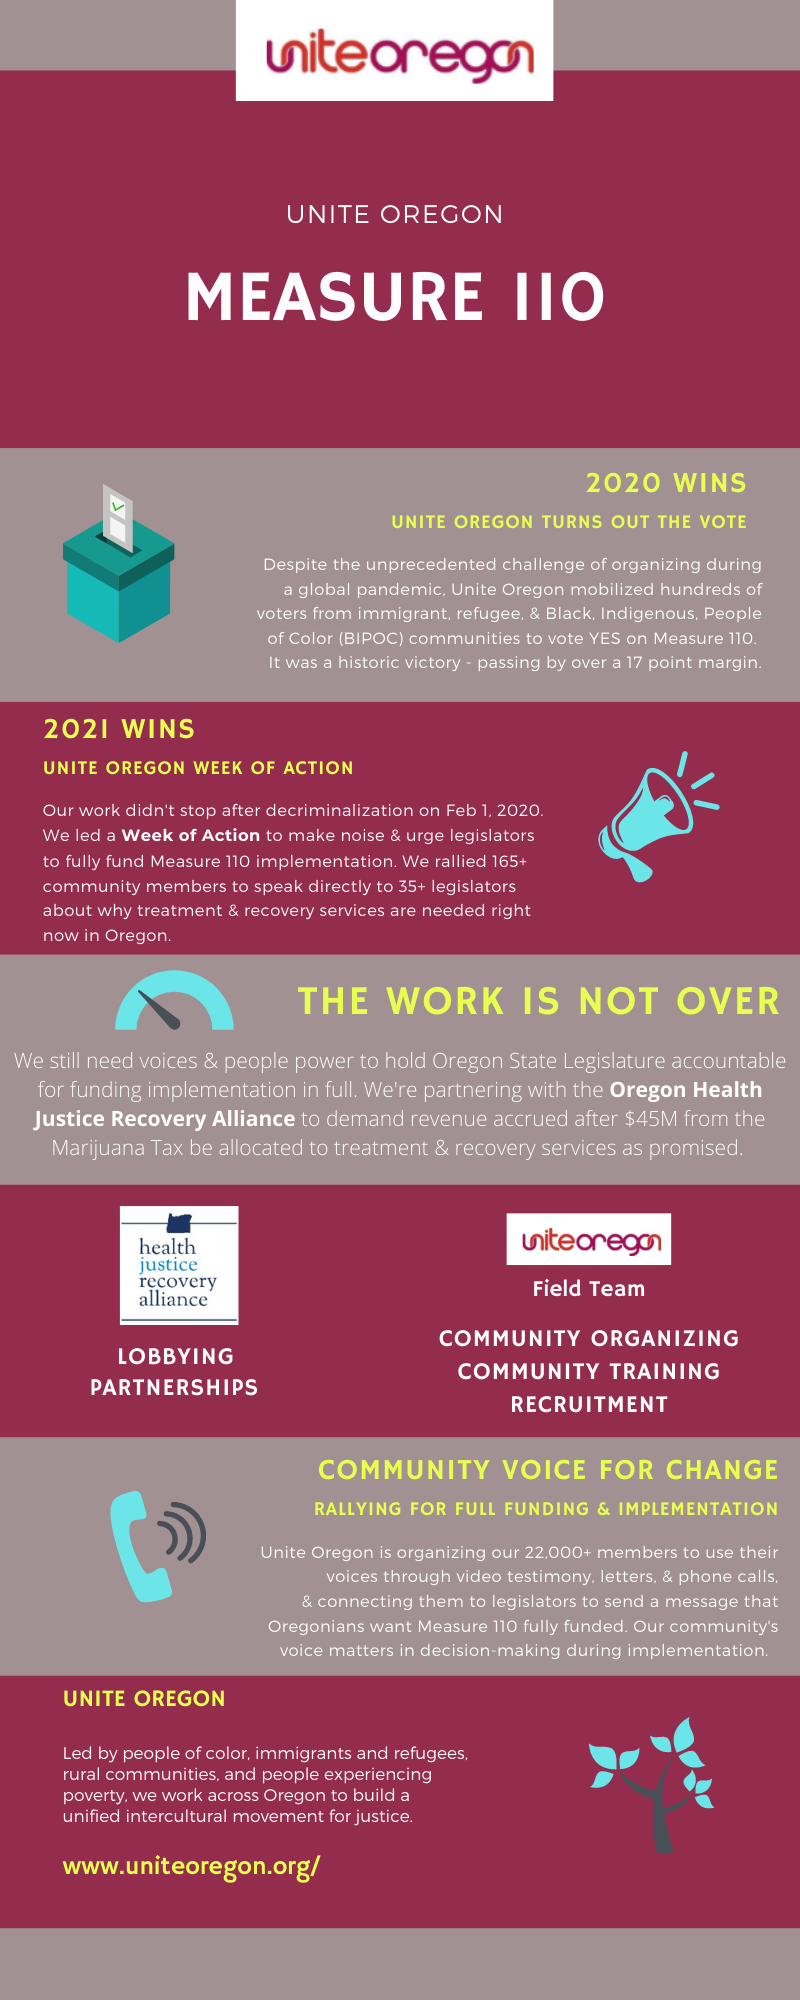 Infographic reading:  UNITE OREGON  MEASURE 110  2020 WINS  unite oregon turns out the vote  Despite the unprecedented challenge of organizing during a global pandemic, Unite Oregon mobilized hundreds of voters from immigrant, refugee, & Black, Indigenous, People of Color (BIPOC) communities to vote YES on Measure 110.   2021 WINS  Unite Oregon Week of Action  Our work didn't stop after decriminalization on Feb 1, 2020.  We led a Week of Action to make noise & urge legislators to fully fund Measure 110 implementation. We rallied 165+ community members to speak directly to 35+ legislators about why treatment & recovery services are needed right now in Oregon.   THE WORK IS NOT OVER  We still need voices & people power to hold Oregon State Legislature accountable for funding implementation in full. We're partnering with the Oregon Health Justice Recovery Alliance to demand revenue accrued after $45M from the Marijuana Tax be allocated to treatment & recovery services as promised.   Lobbying Partnerships  Oregon Health Justice Recovery Alliance Unite Oregon Field Team Community ORGANIZING COMMUNITY TRAINING RECRUITMENT  community voice for change  rallying for full funding & implementation  Unite Oregon is organizing our 22,000+ members to use their voices through video testimony, letters, & phone calls, & connecting them to legislators to send a message that Oregonians want Measure 110 fully funded. Our community's voice matters in decision-making during implementation.    UNITE OREGON  Led by people of color, immigrants and refugees, rural communities, and people experiencing poverty, we work across Oregon to build a unified intercultural movement for justice.  www.uniteoregon.org/